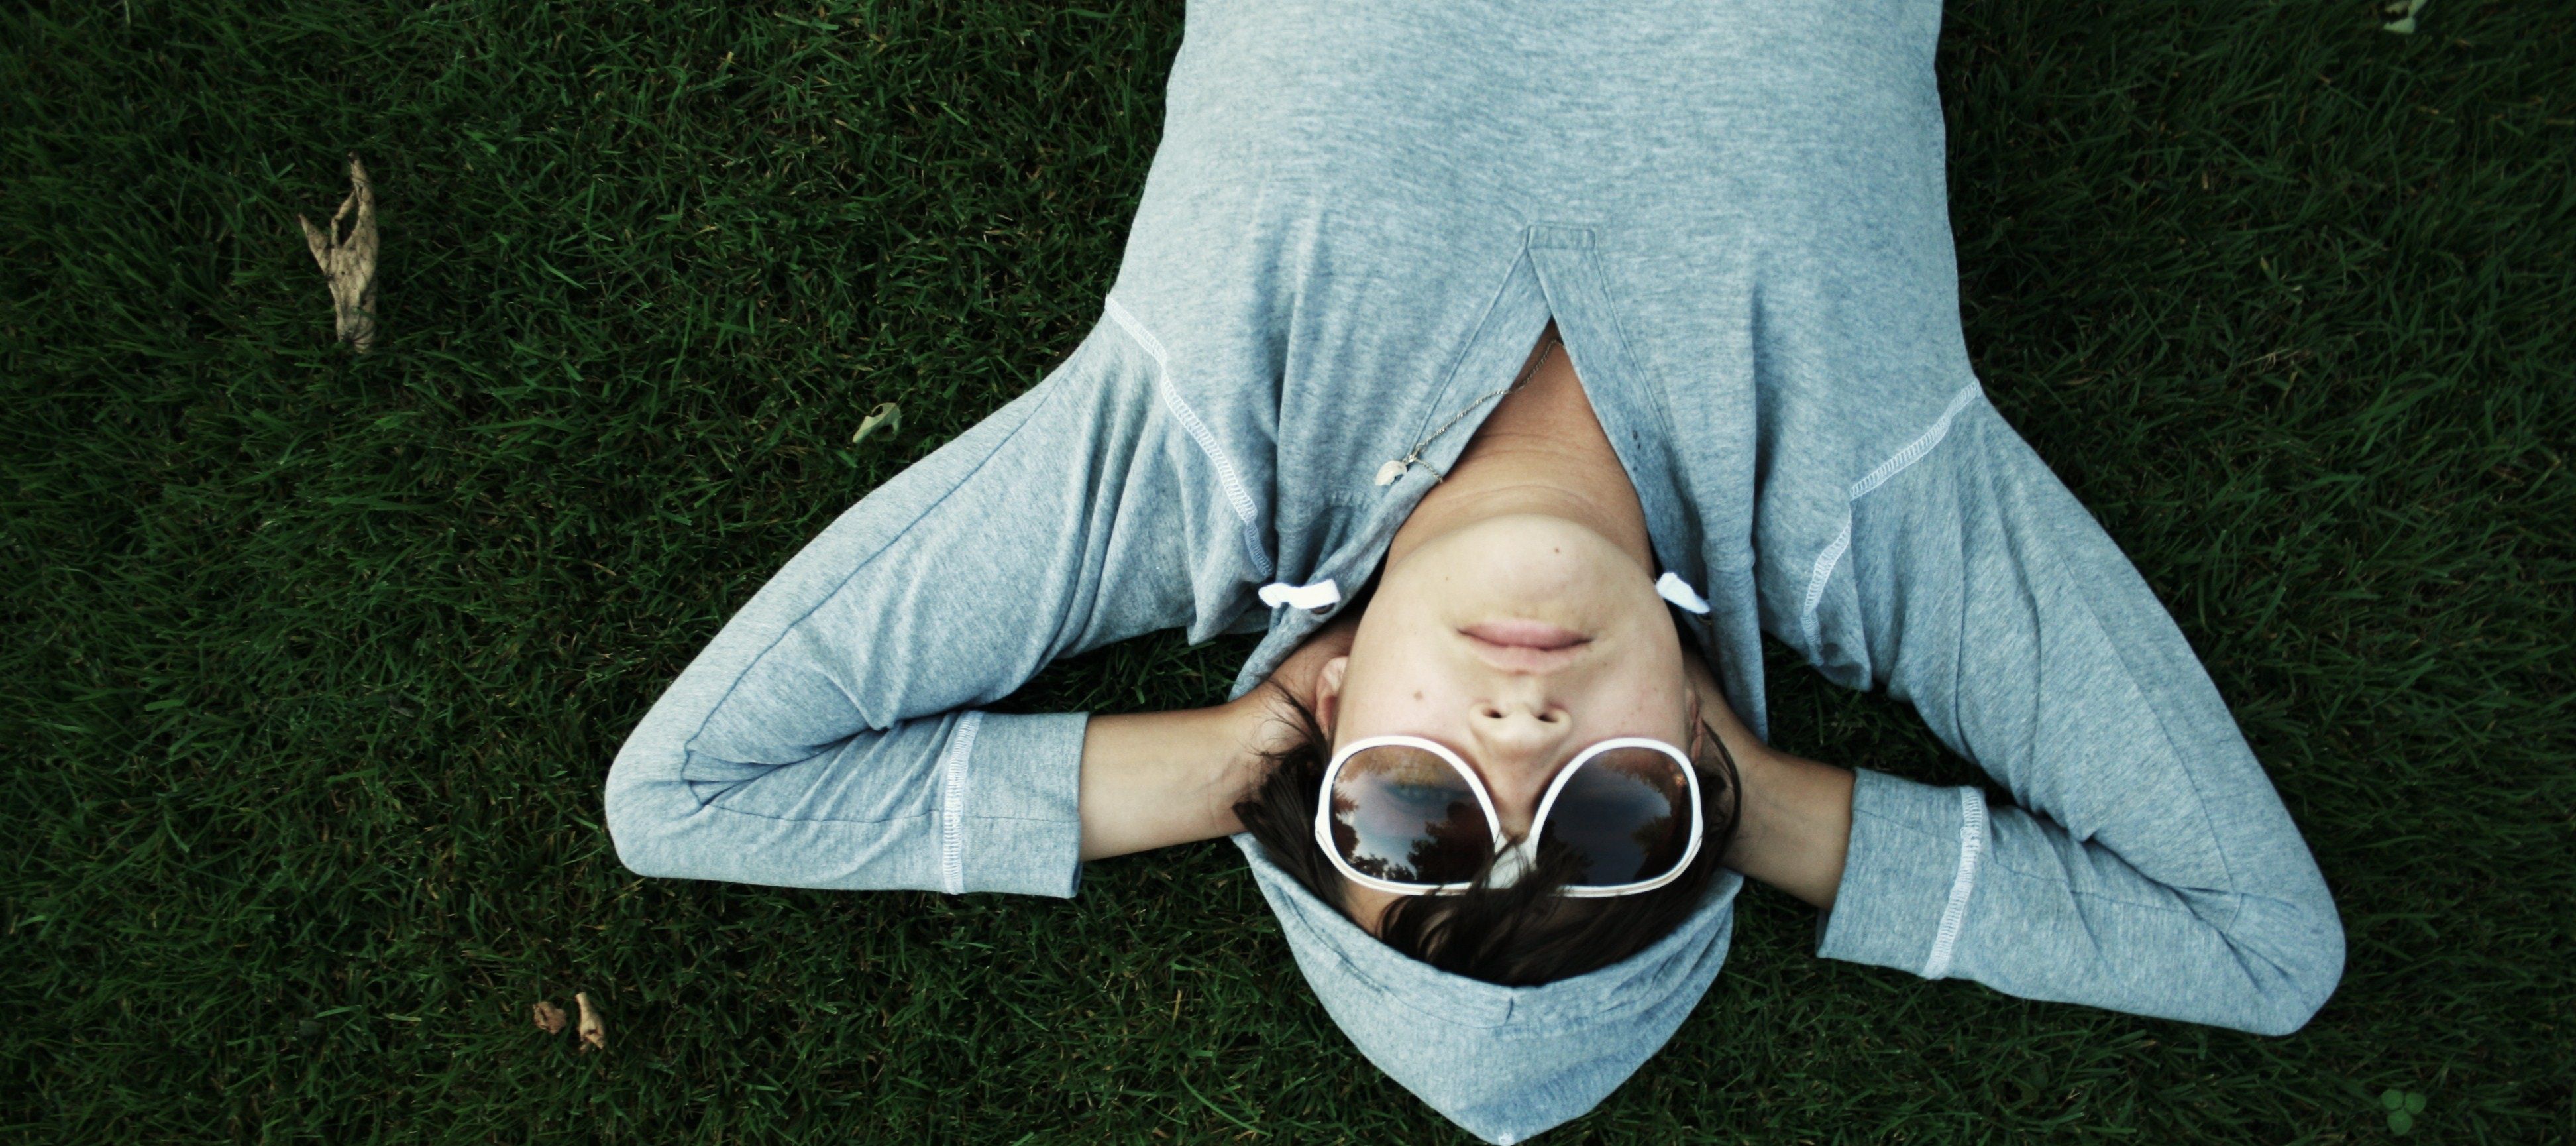 person laying on ground in hoodie and sunglasses